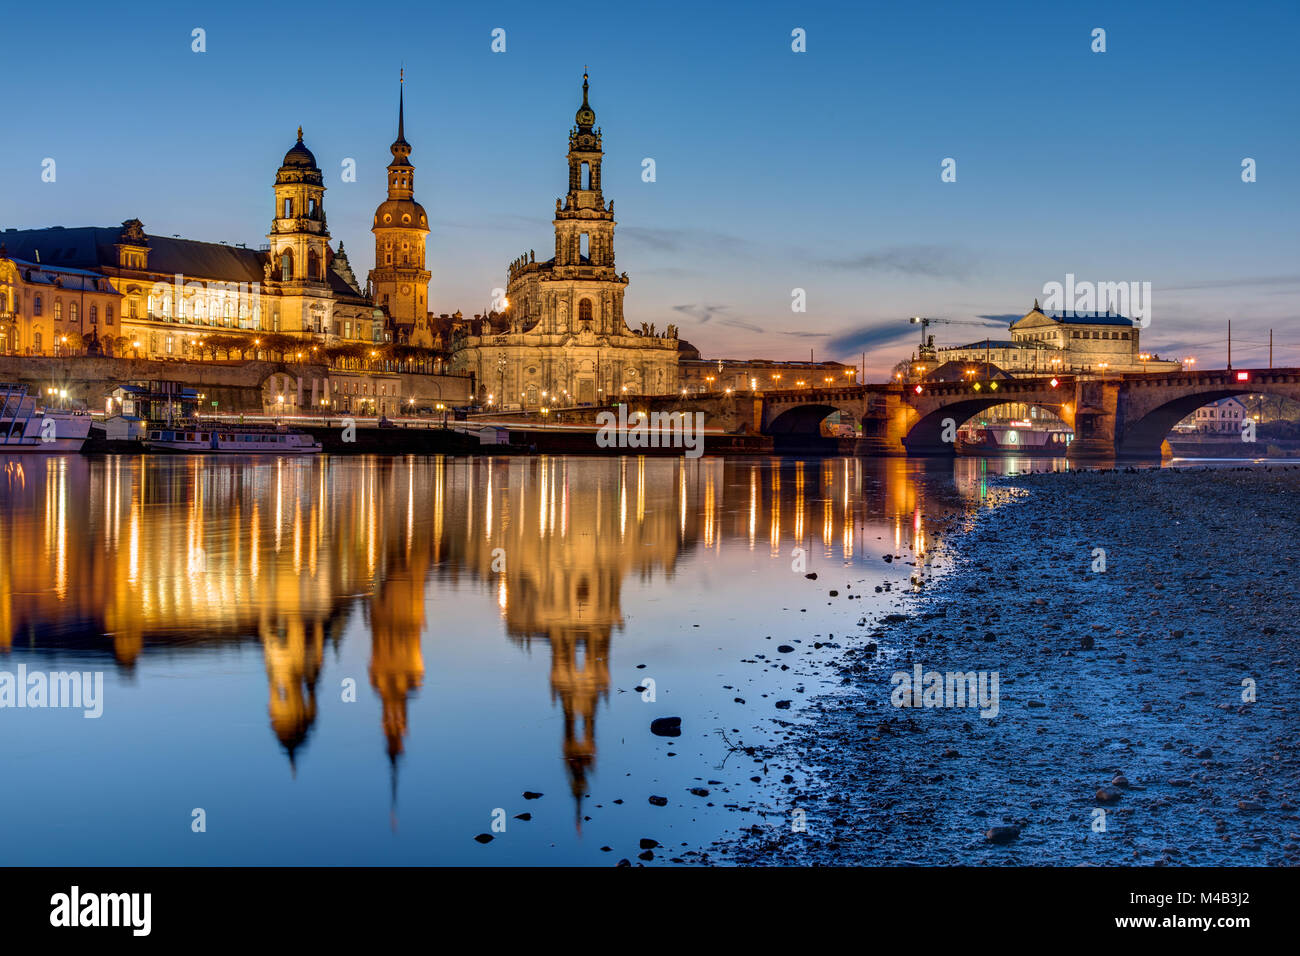 Sunset at the historic center of Dresden with the river Elbe - Stock Image